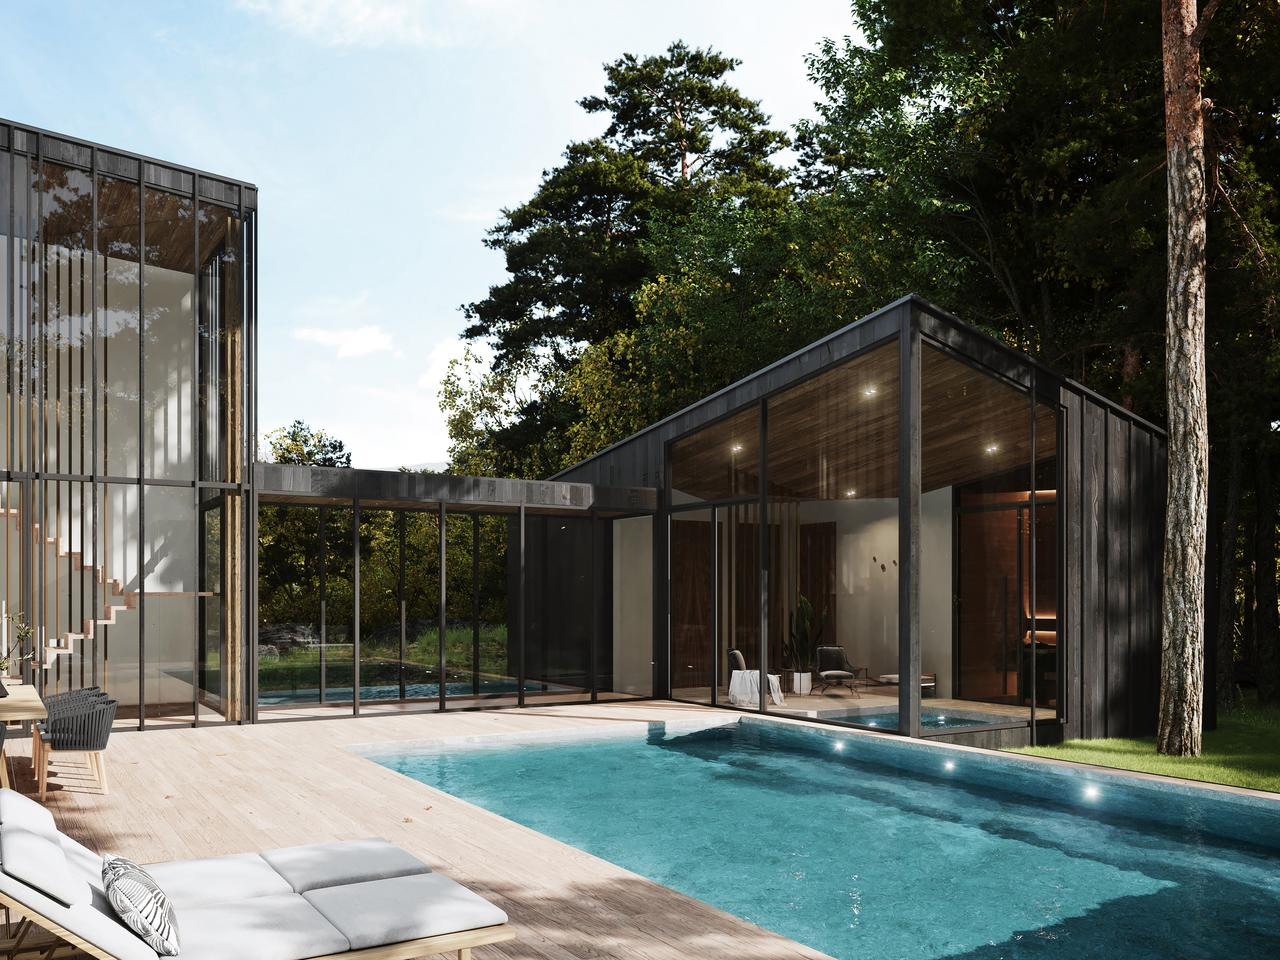 Sylvan Rock will boast a large outdoor pool and terrace area